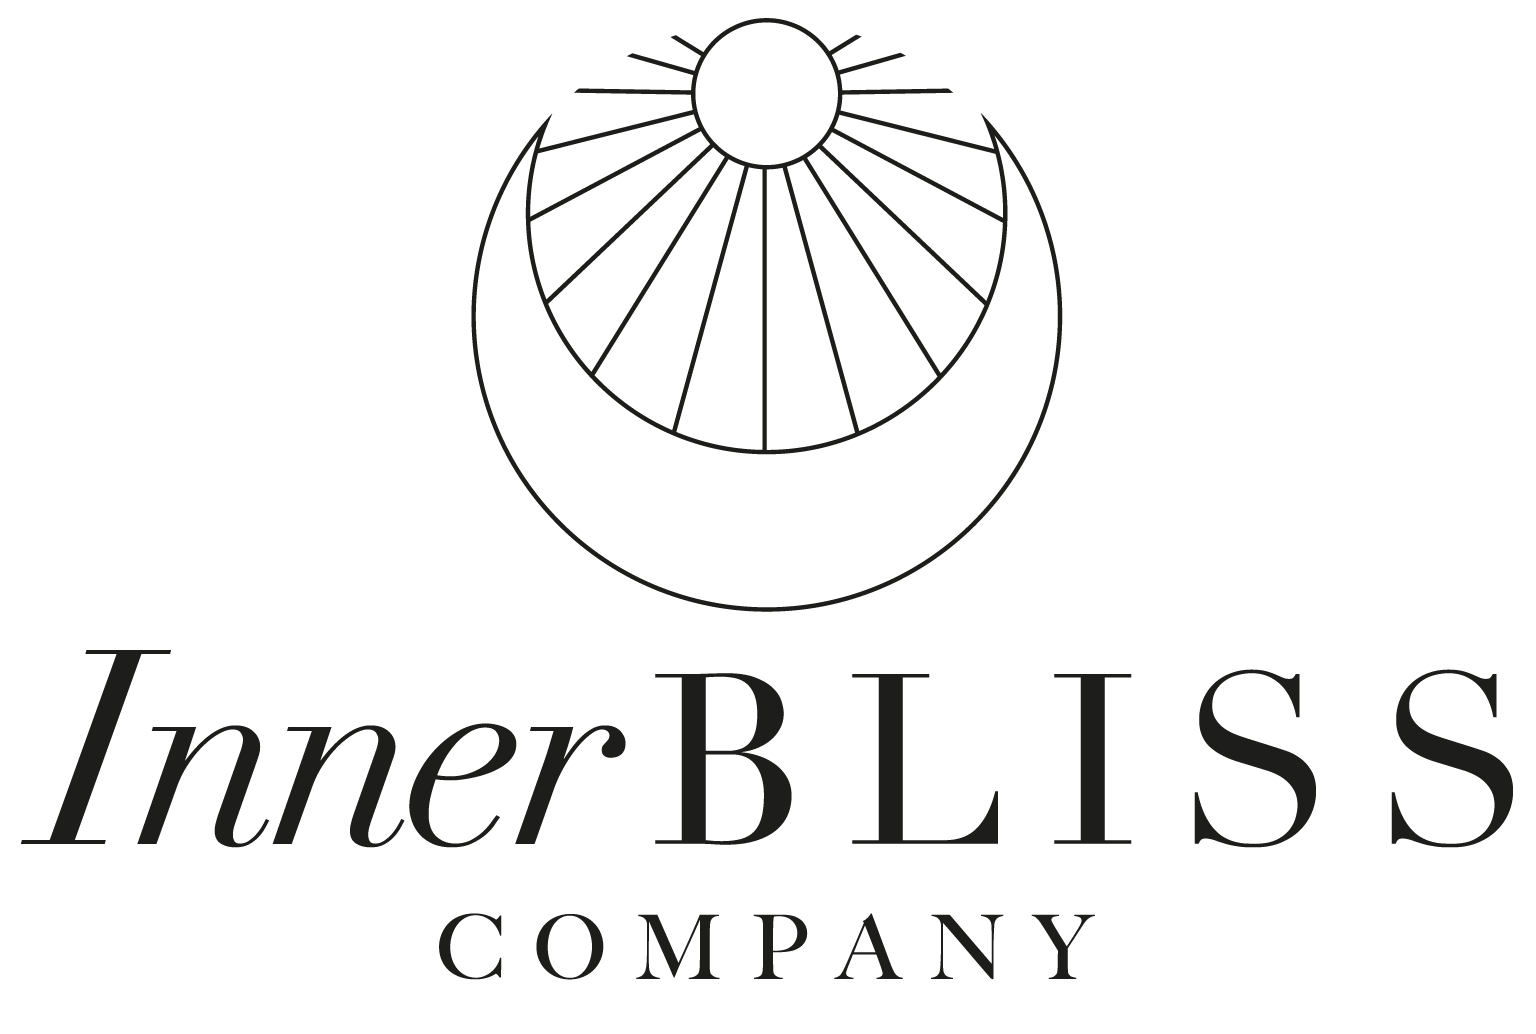 Inner Bliss Company